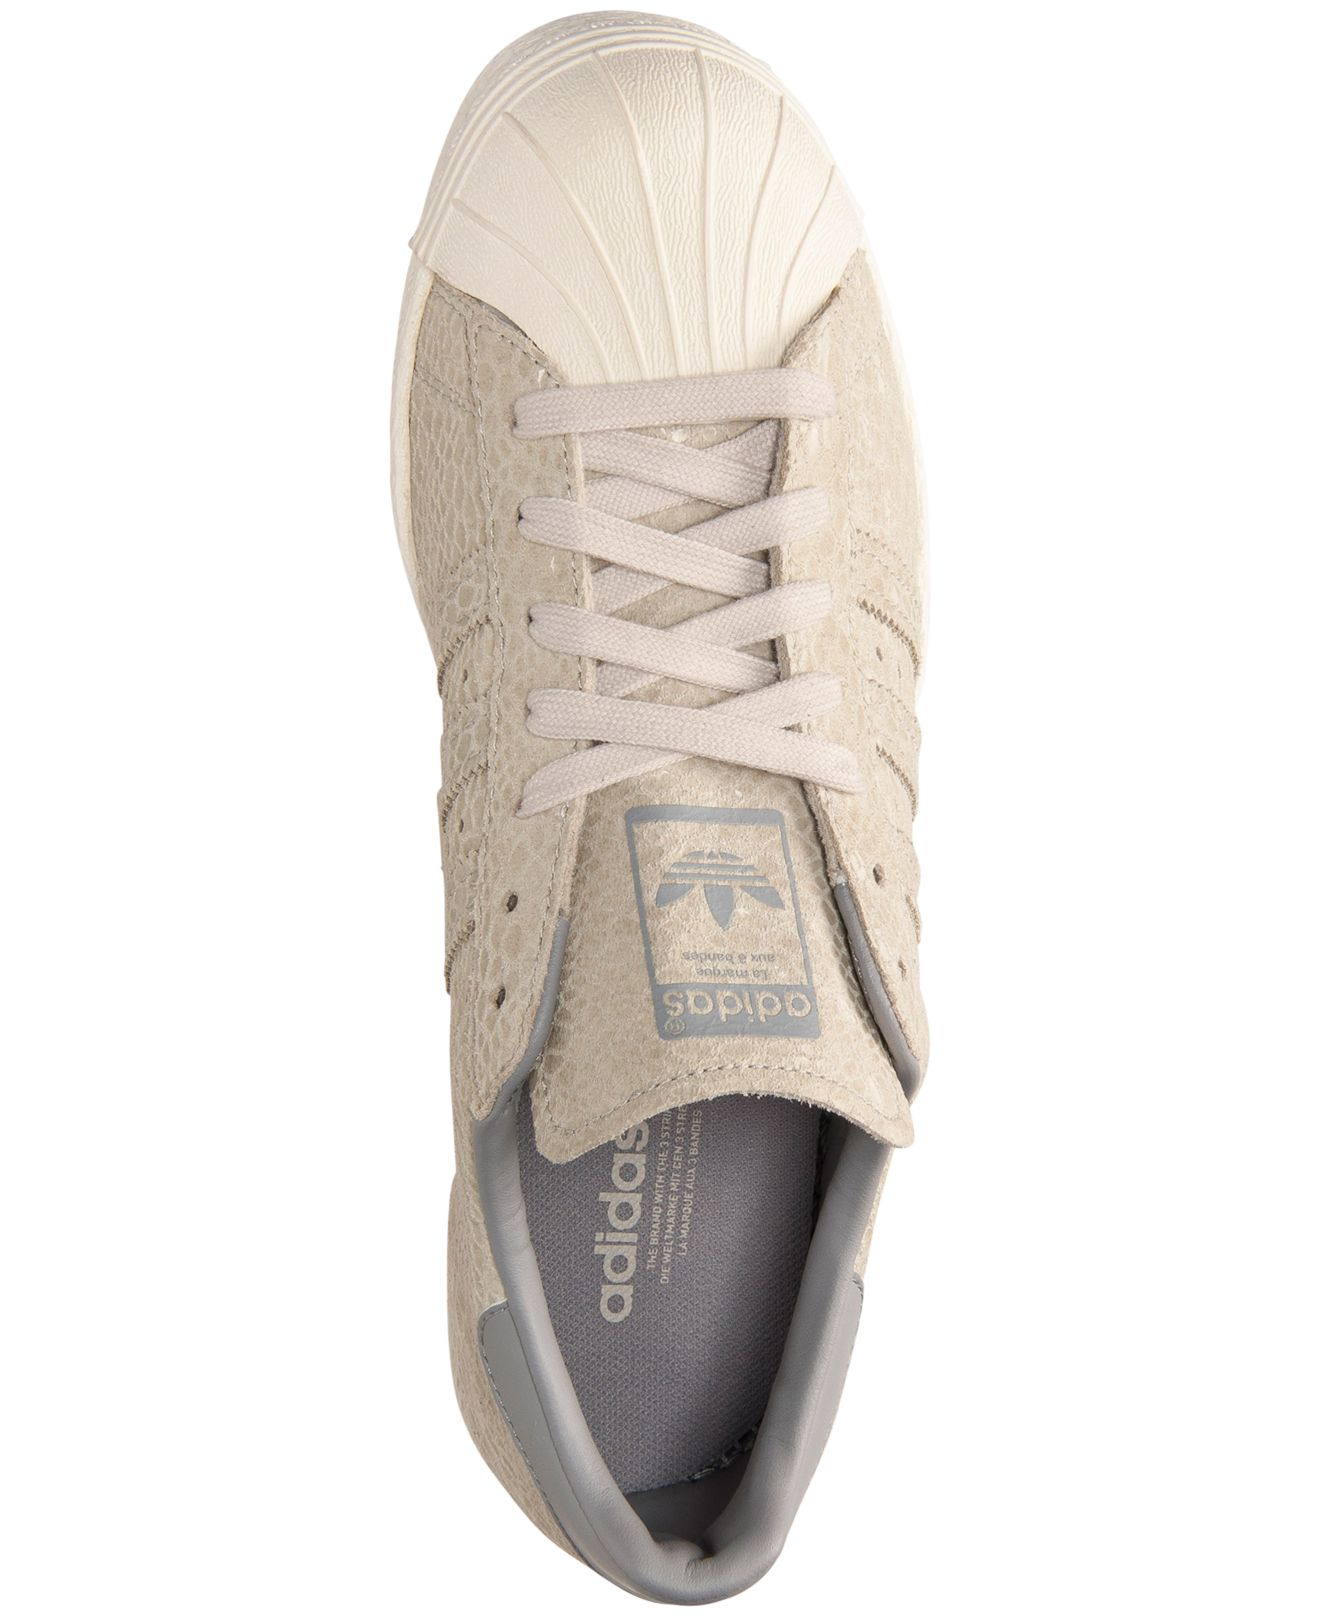 ddb82a1f9 Lyst - adidas Originals Women s Superstar  80s Casual Sneakers From Finish  Line in Gray